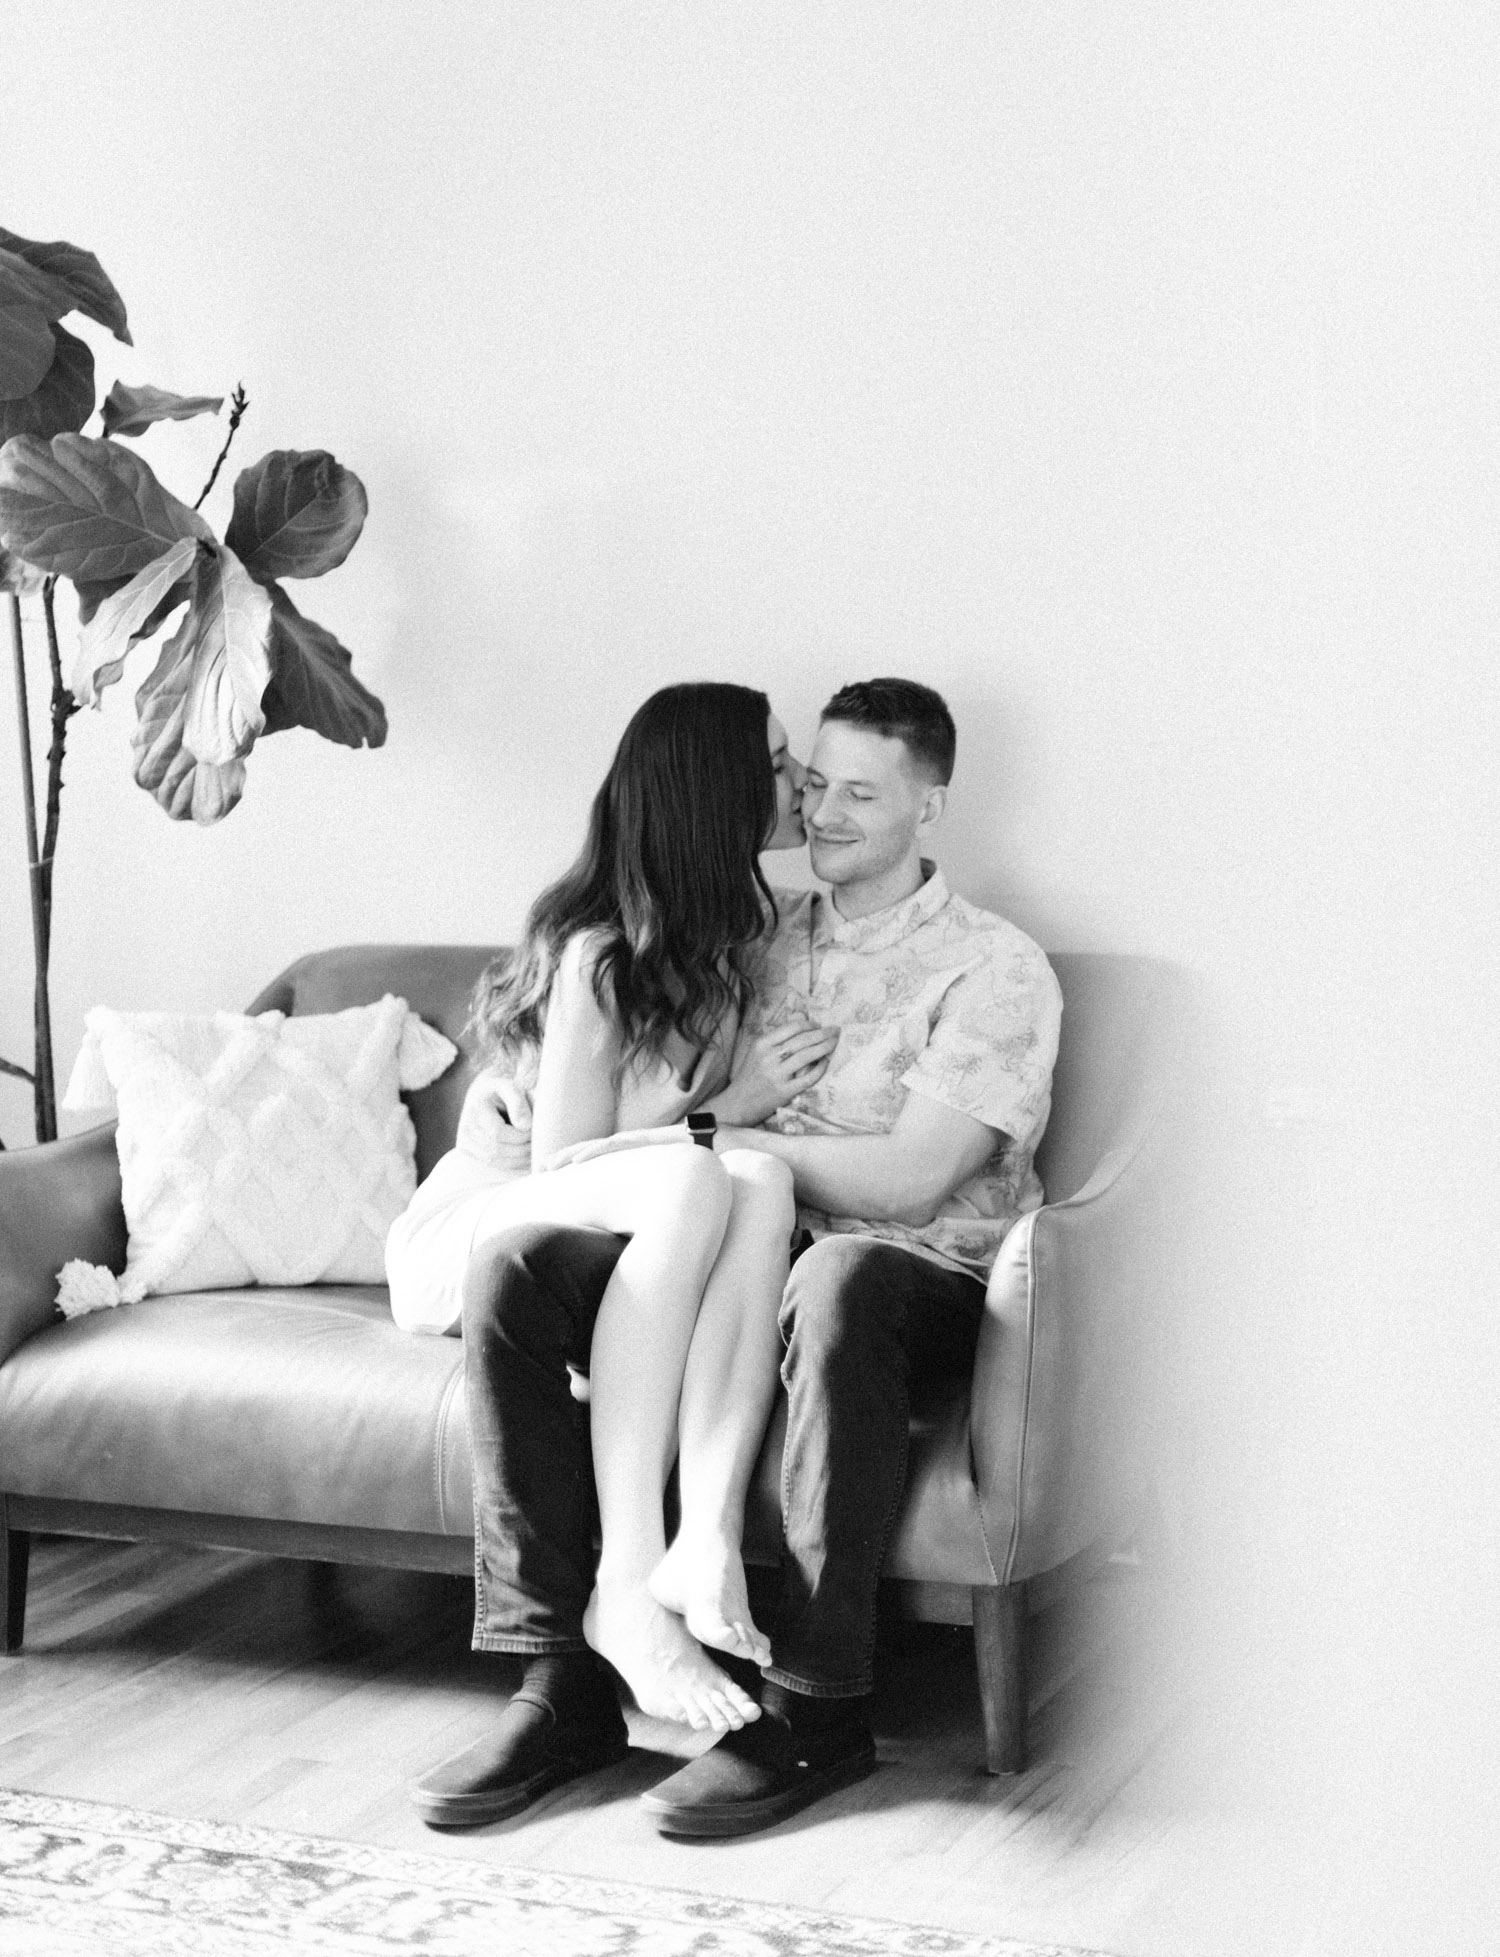 A Detroit couple cuddles on their couch in Rochester, Michigan during their at home photo session